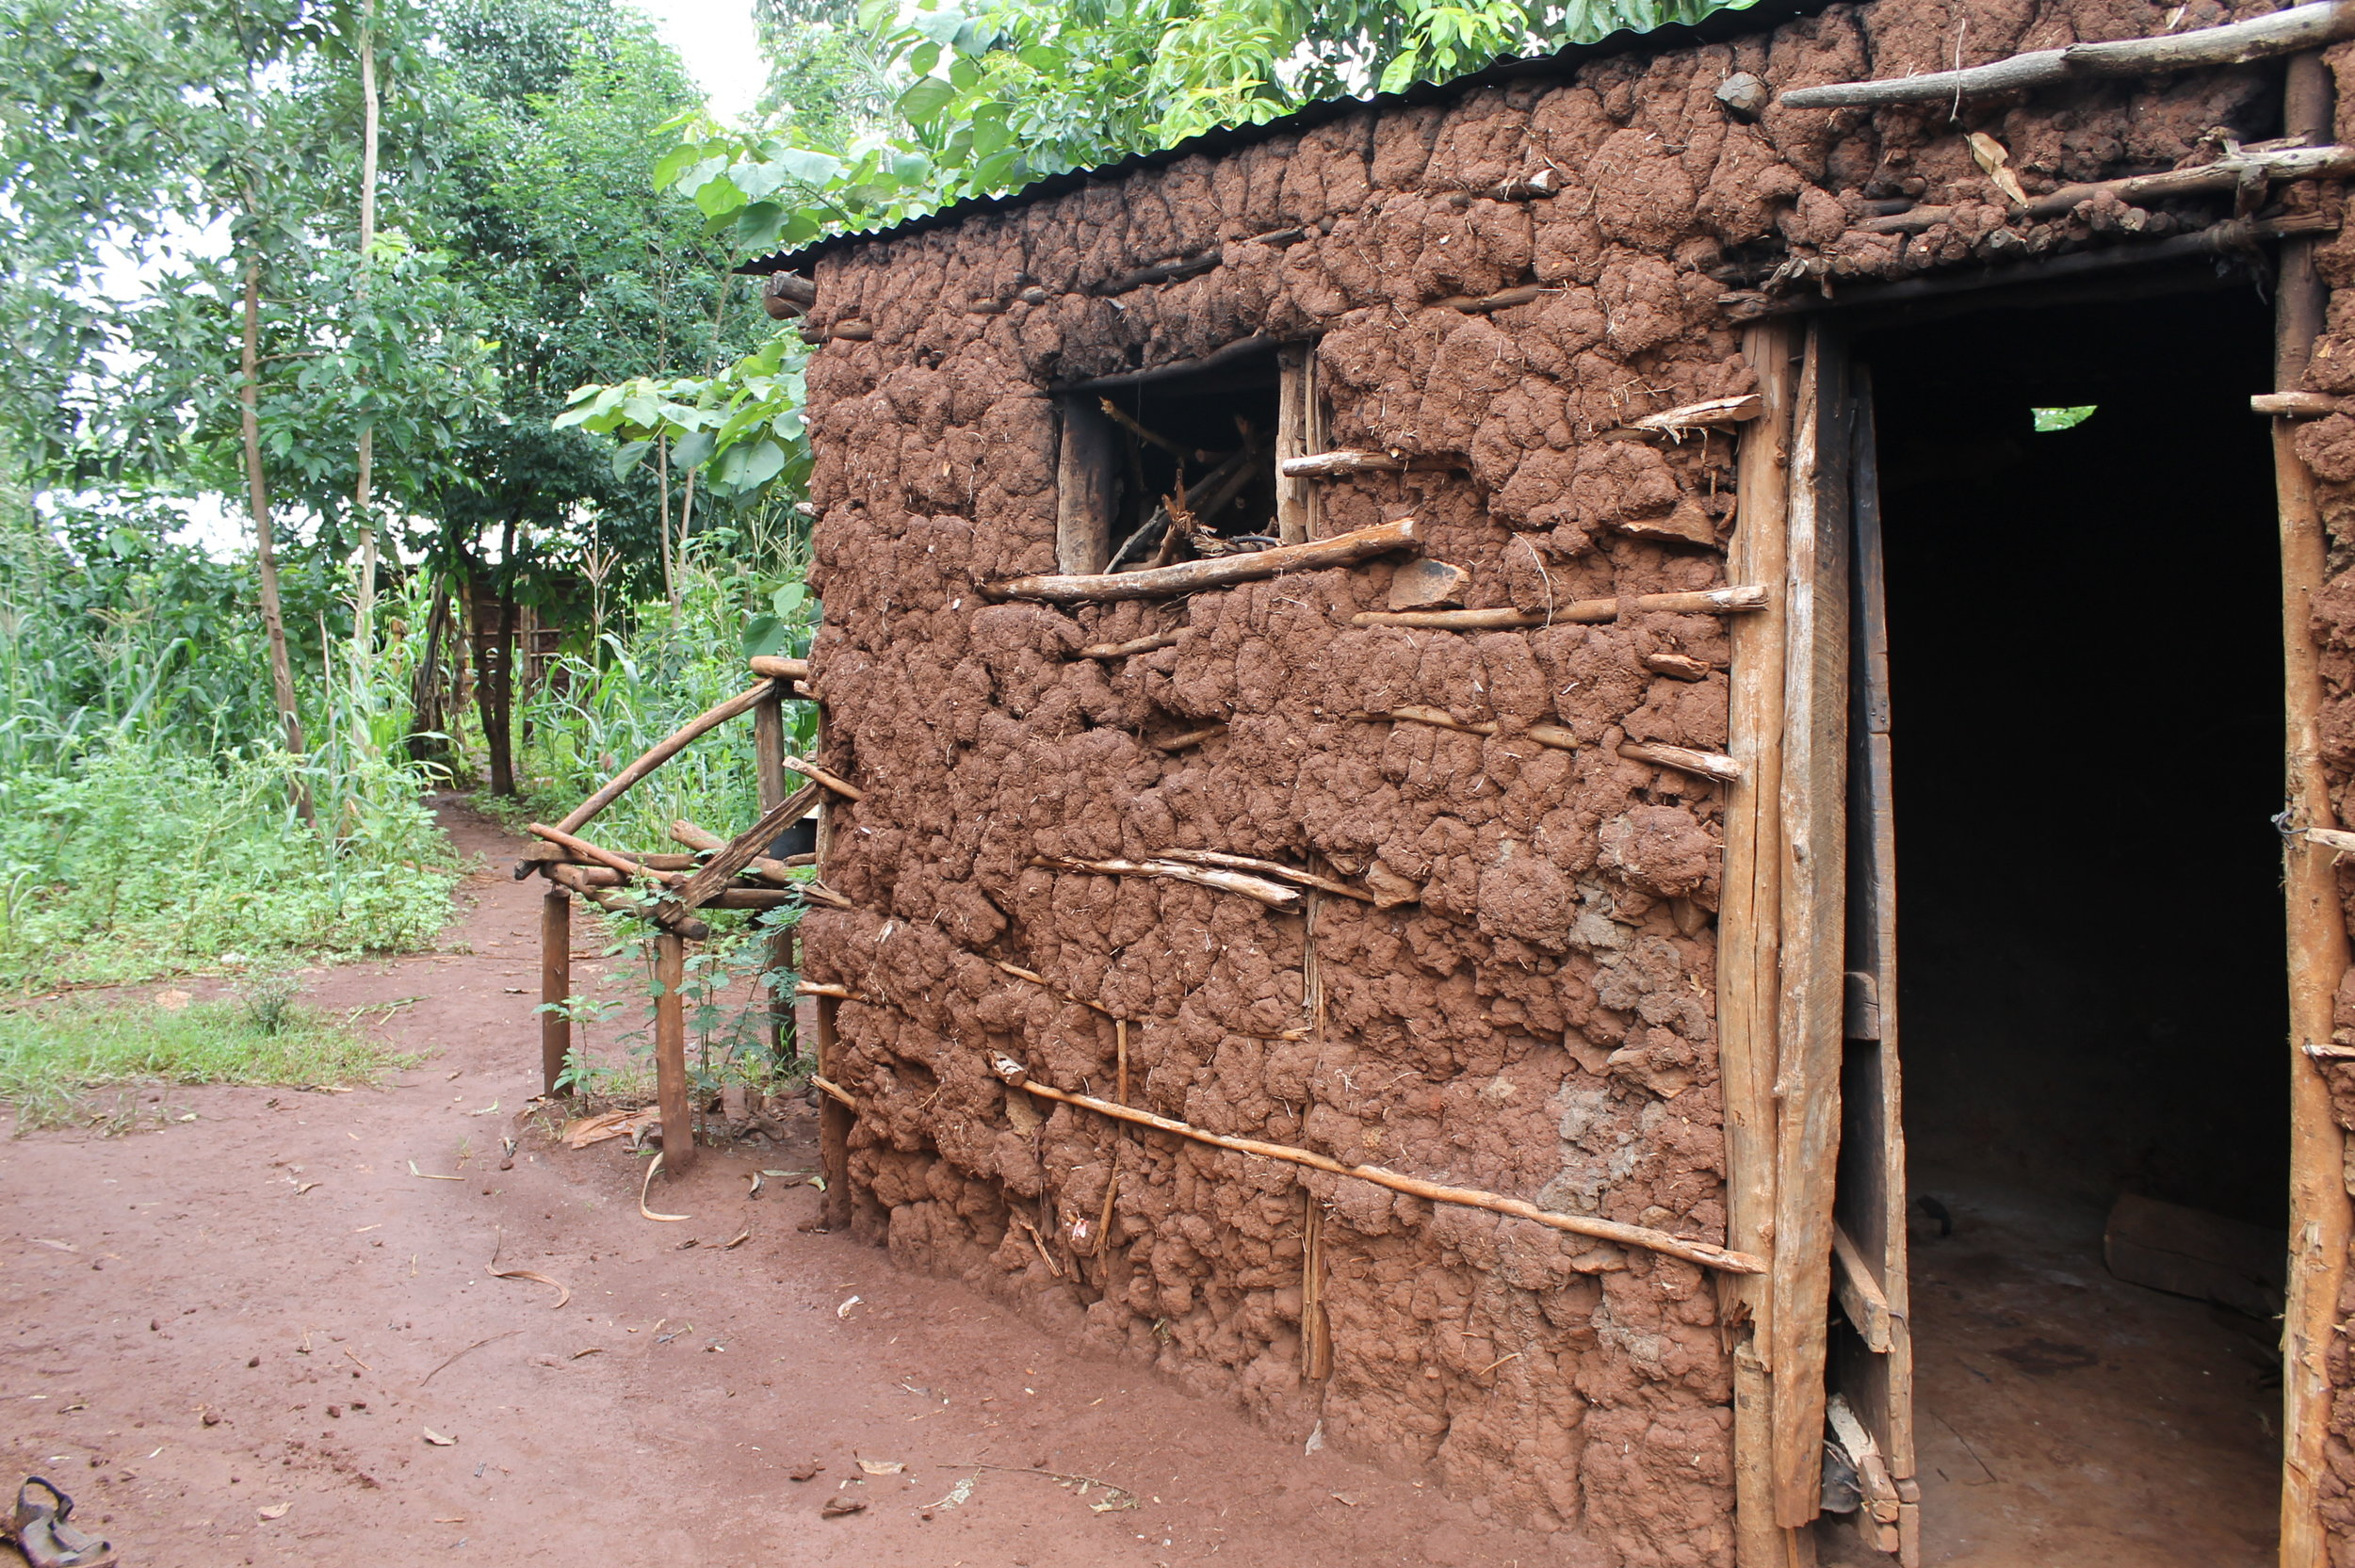 We loved this picture because it shows how much work goes into creating the houses in the Kimilili community. First, a wooden frame must be constructed, and then it must be packed with a mixture of mud and hay.